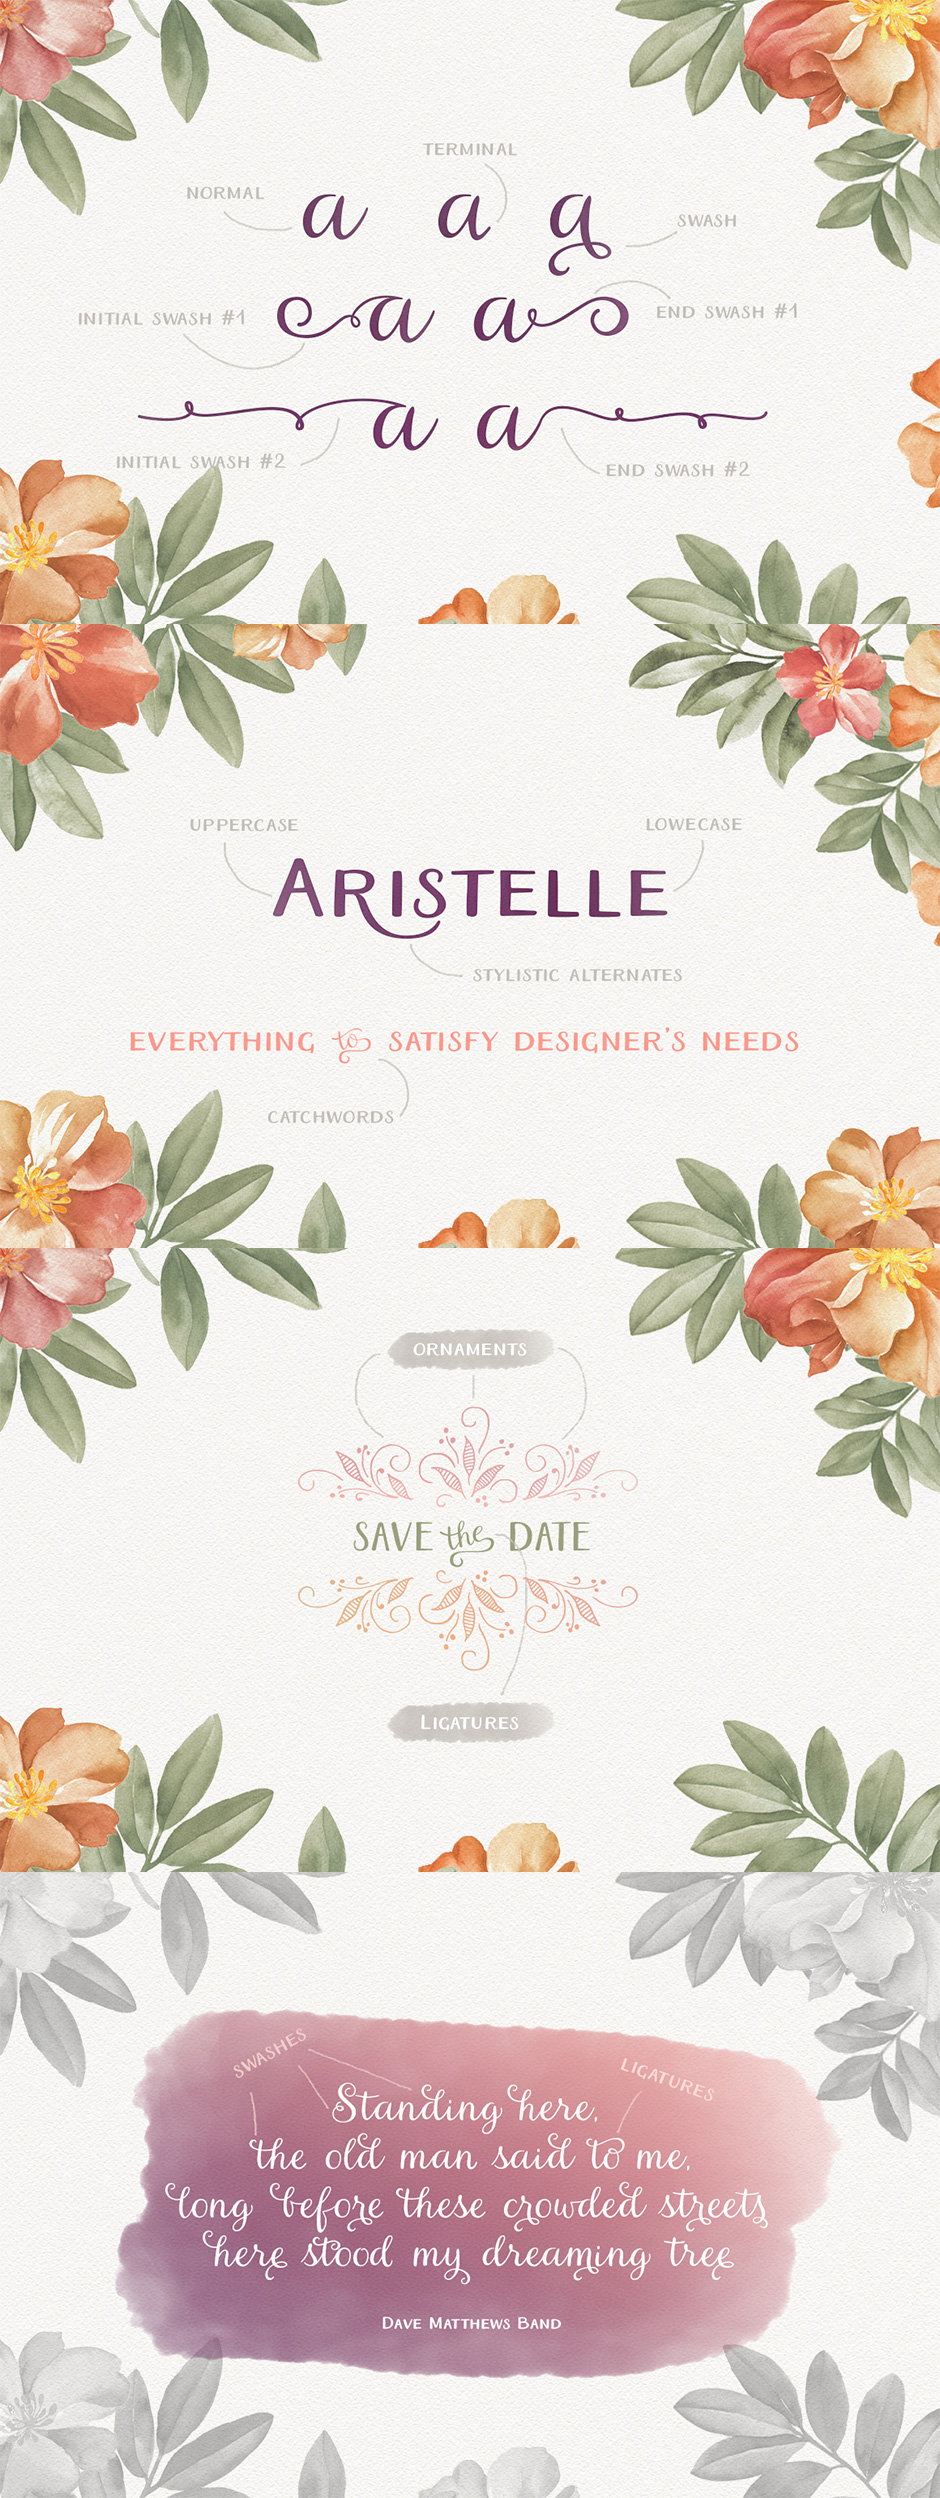 Aristelle Family